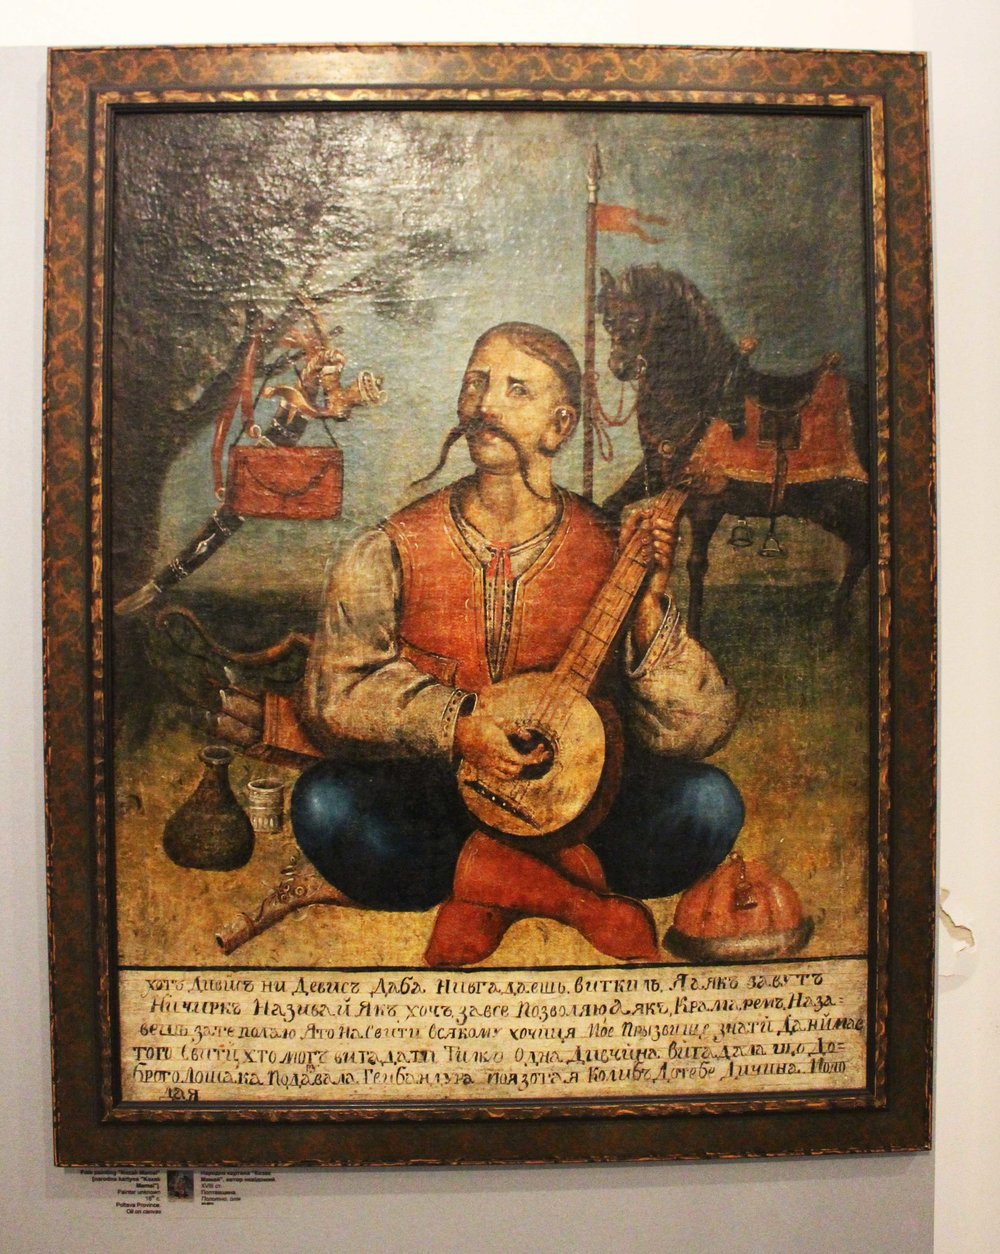 Many people have created similar paintings to this, featuring a Kozak sitting cross legged playing a bandura with a horse in the background. The various objects in the painting symbolize different things, but overall, our museum guide said this painting symbolizes the proud Kozak history. Ukrainians hang it in their home for protection.